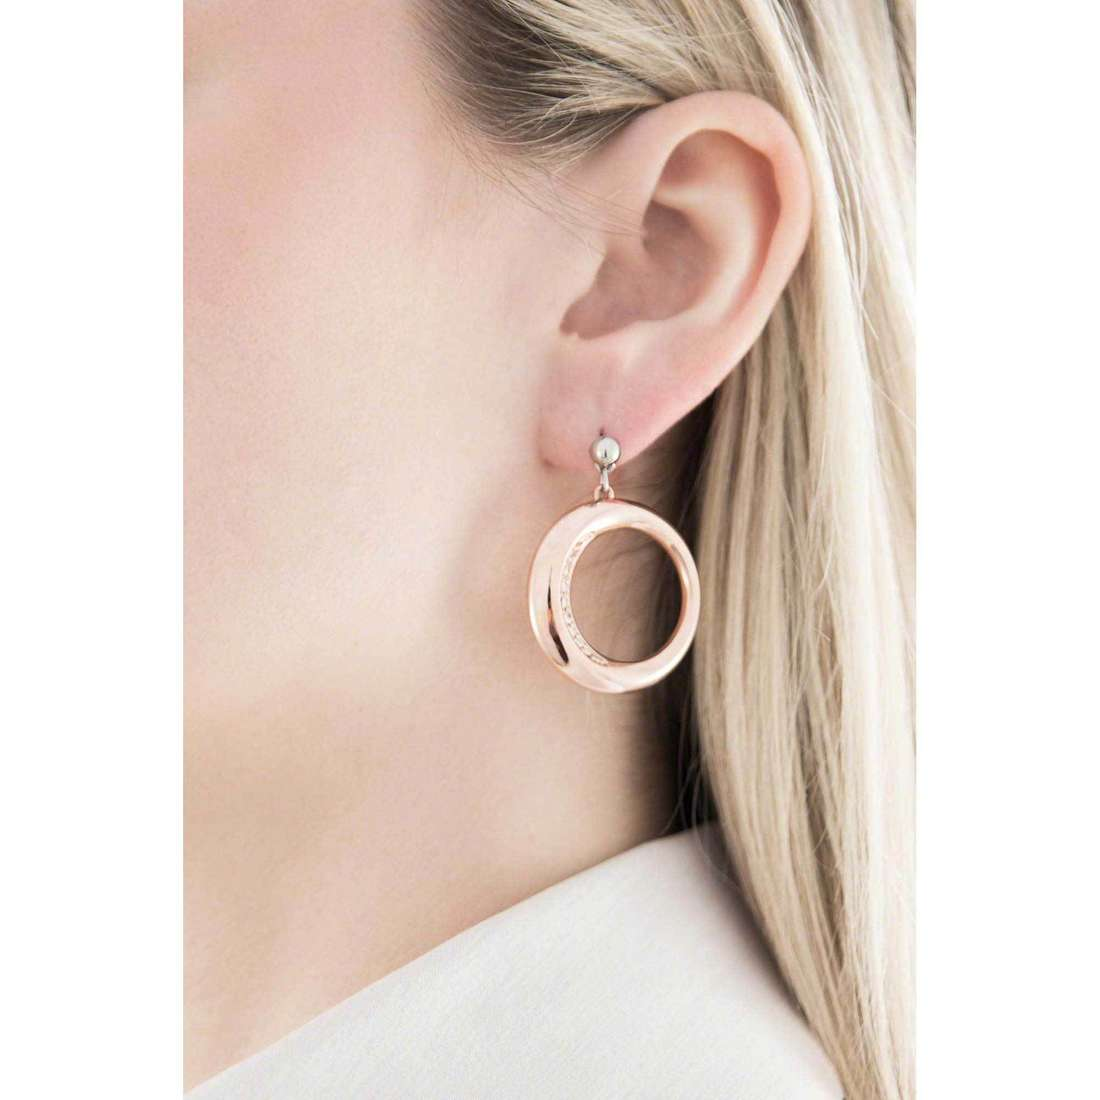 Morellato boucles d'oreille Notti femme SAAH05 indosso